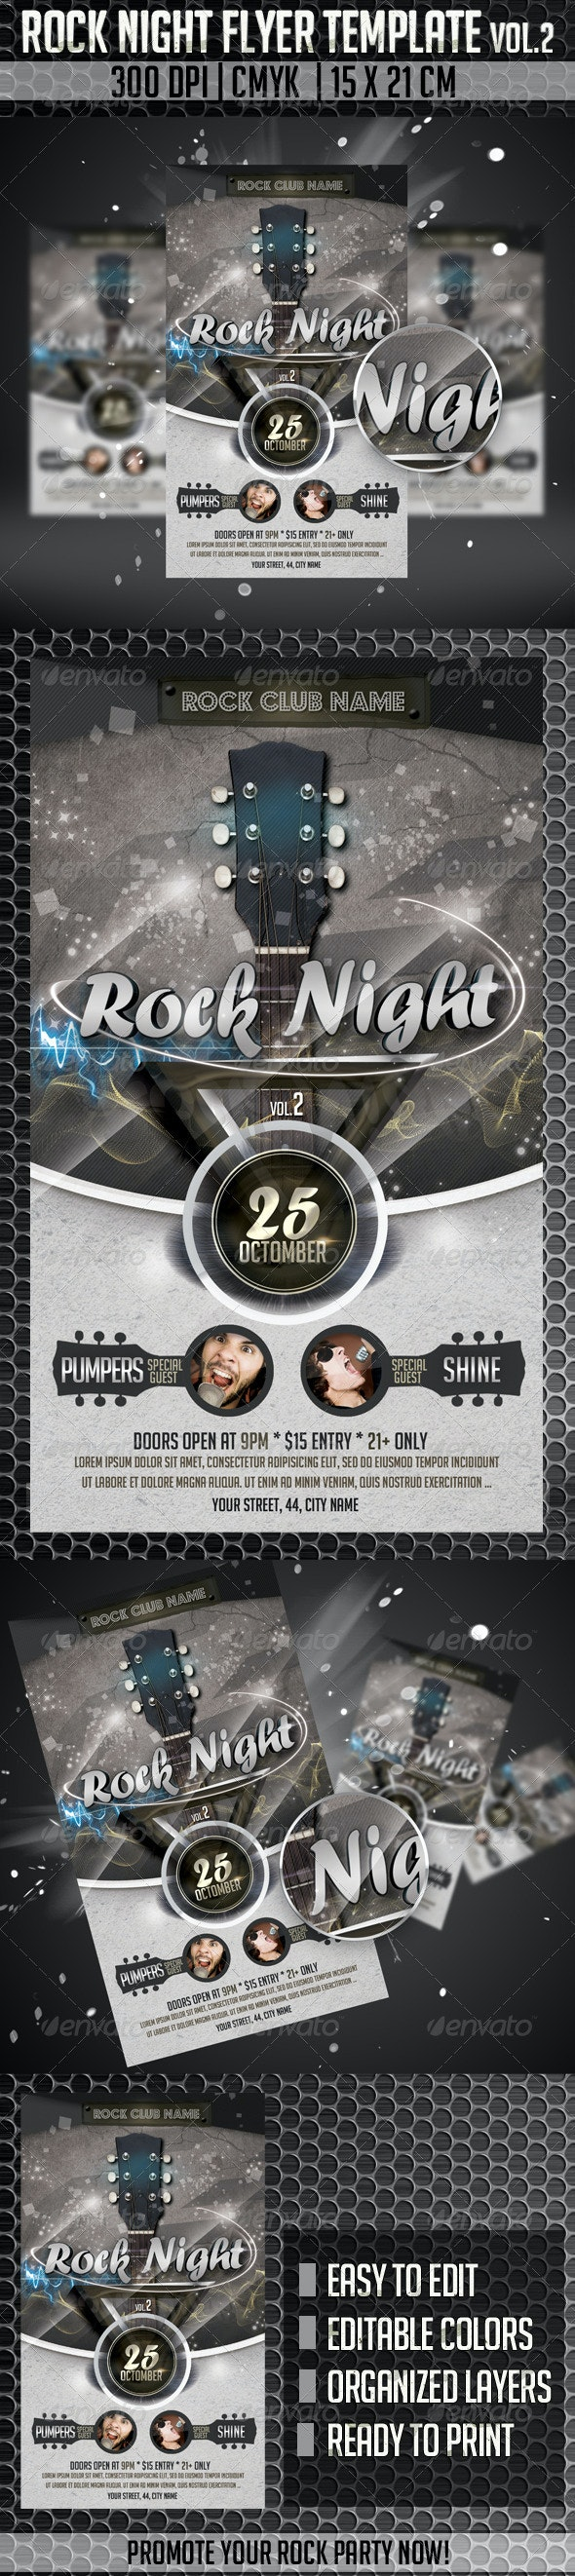 Rock Night Flyer Template Vol2 - Clubs & Parties Events